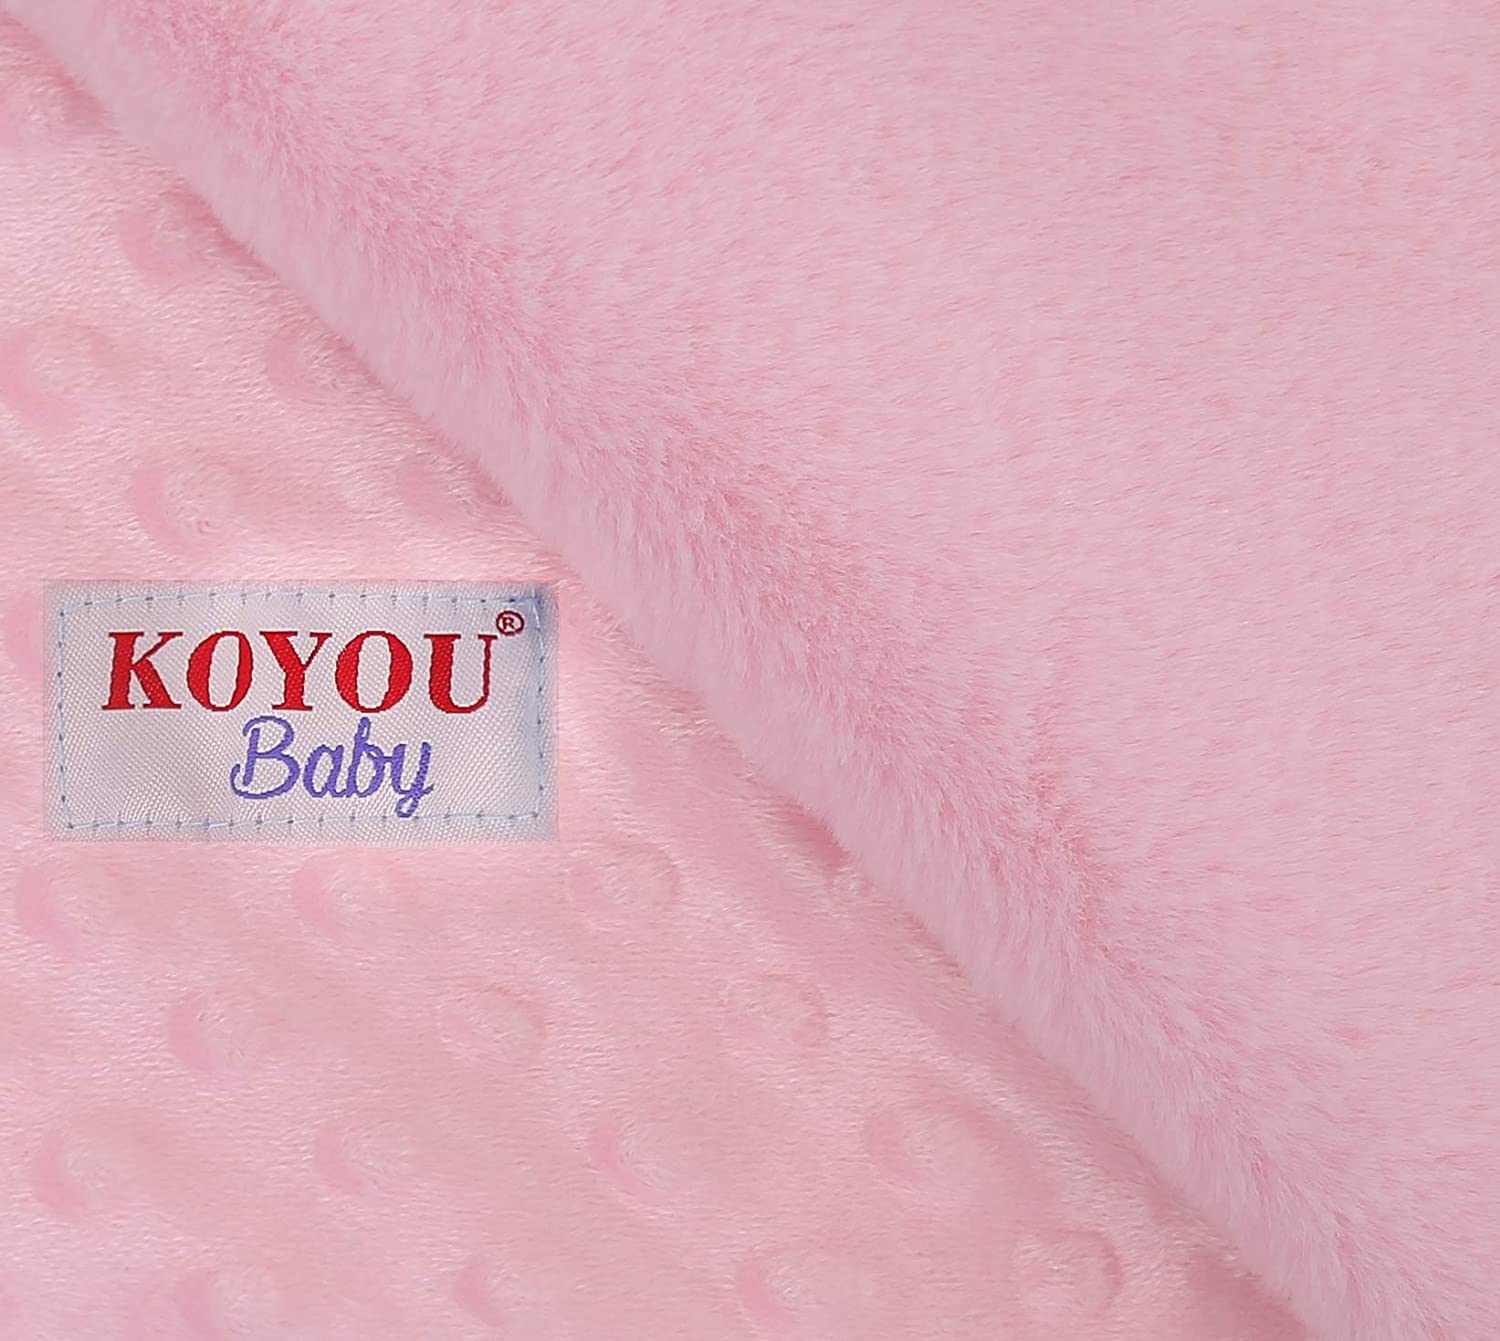 KOYOU Baby Purple Super Soft Minky Plush Reversible Double Layer 30 x 35 Baby Blanket with Dotted Backing and Silky Trim